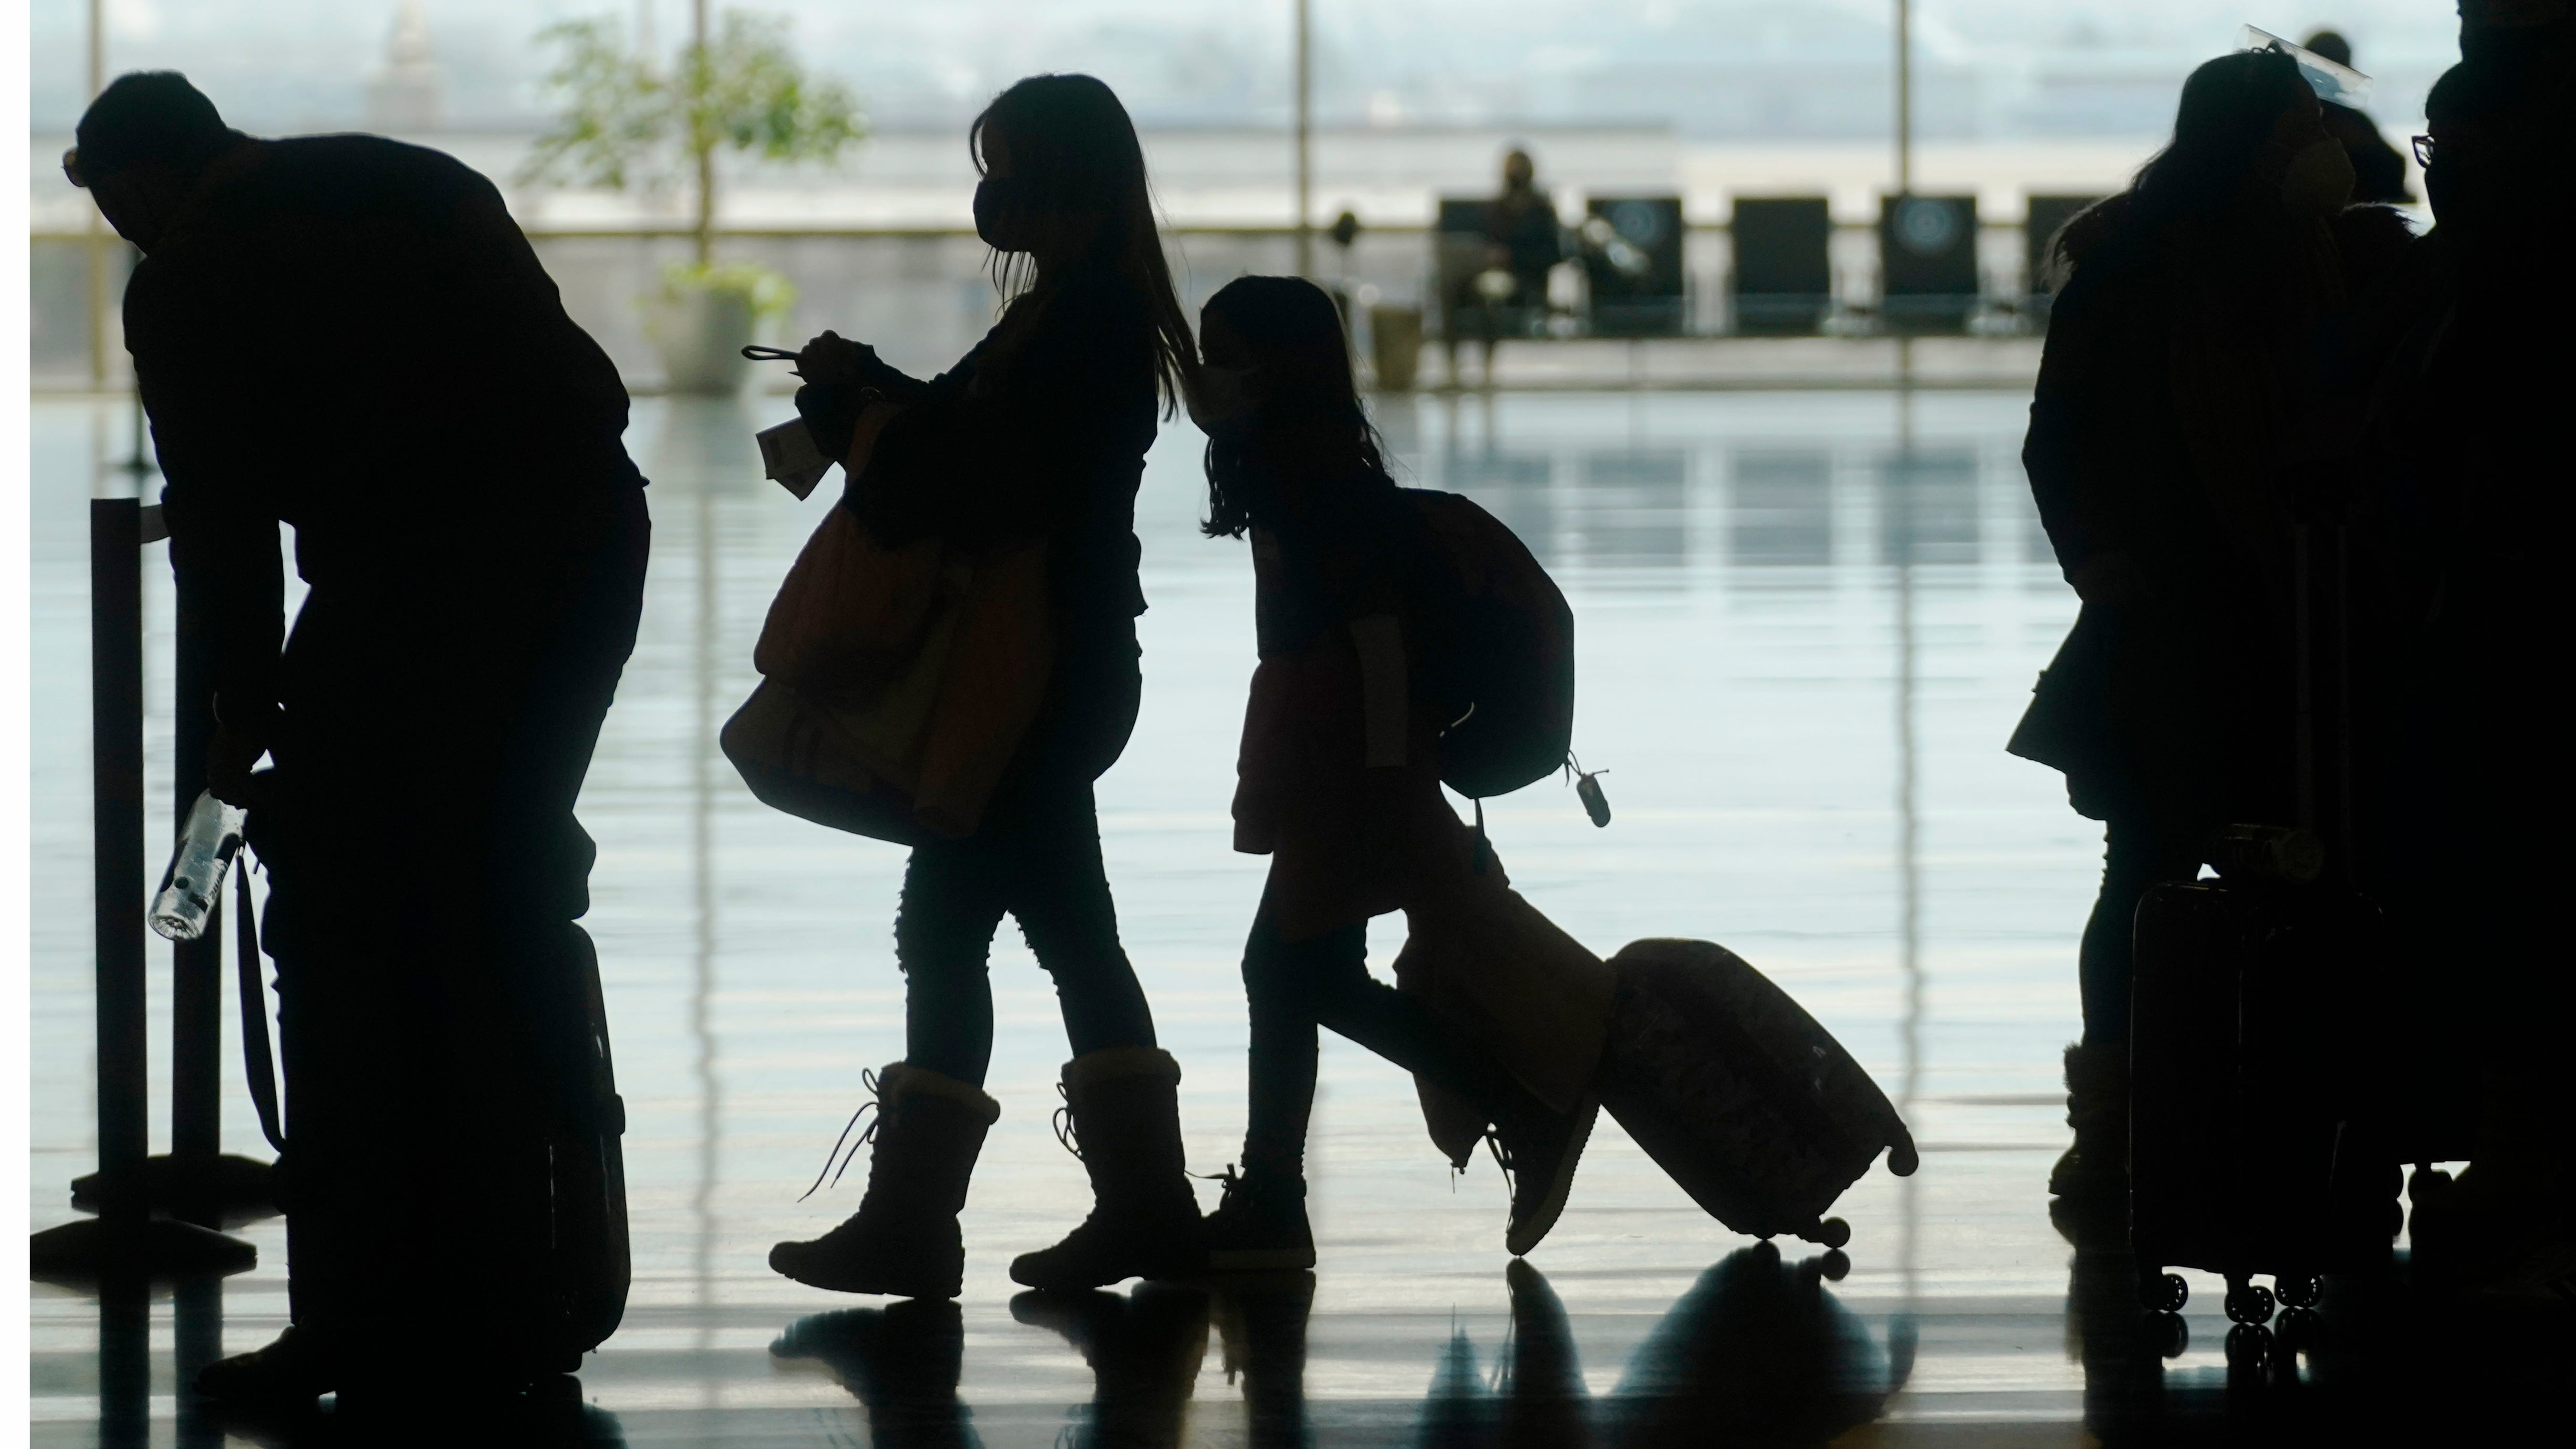 Overseas Americans can travel back to US on expired passports – for now